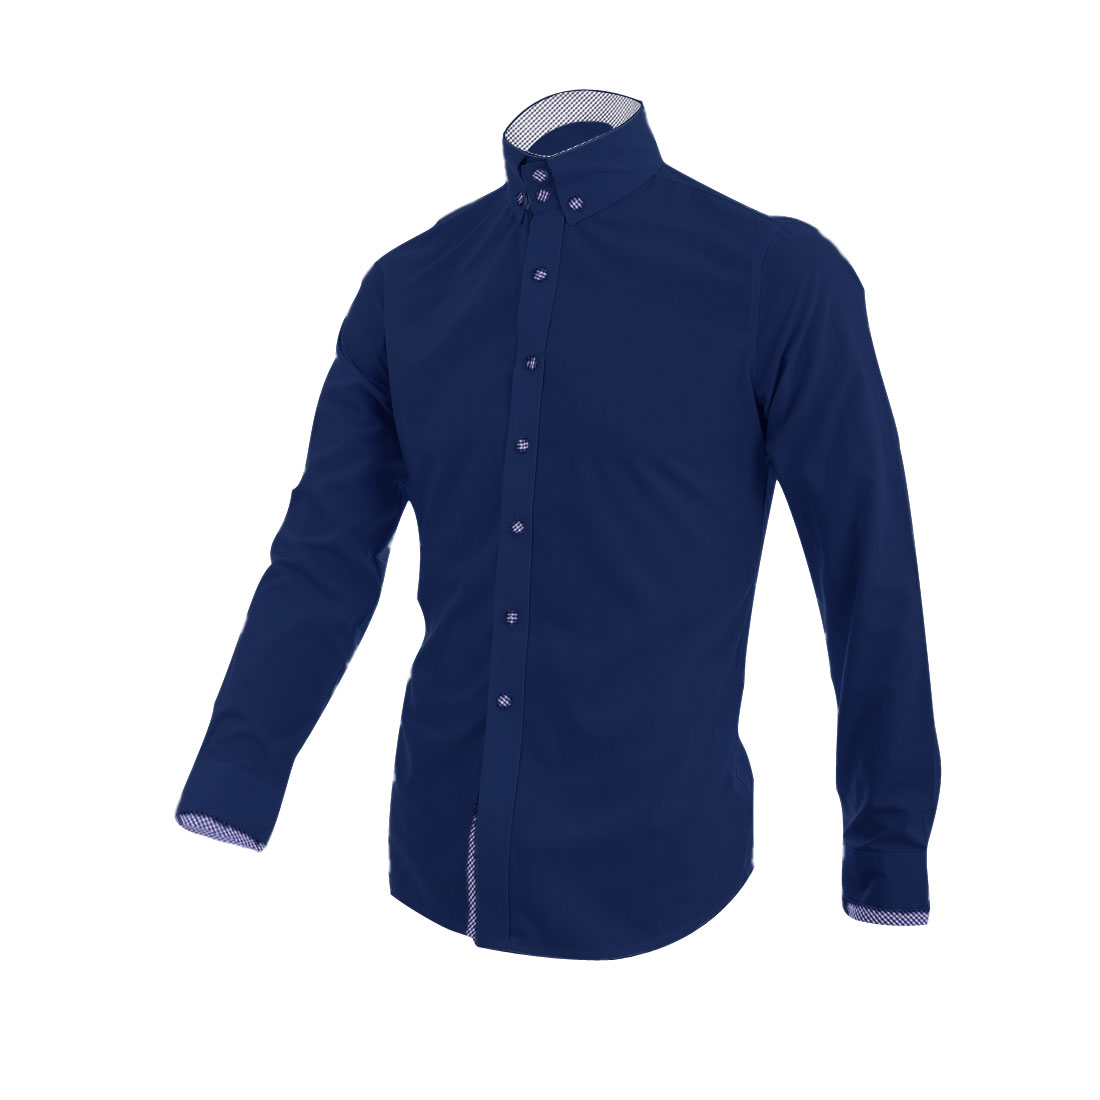 Men Point Collar Long Sleeve Autumn Shirt Navy Blue M